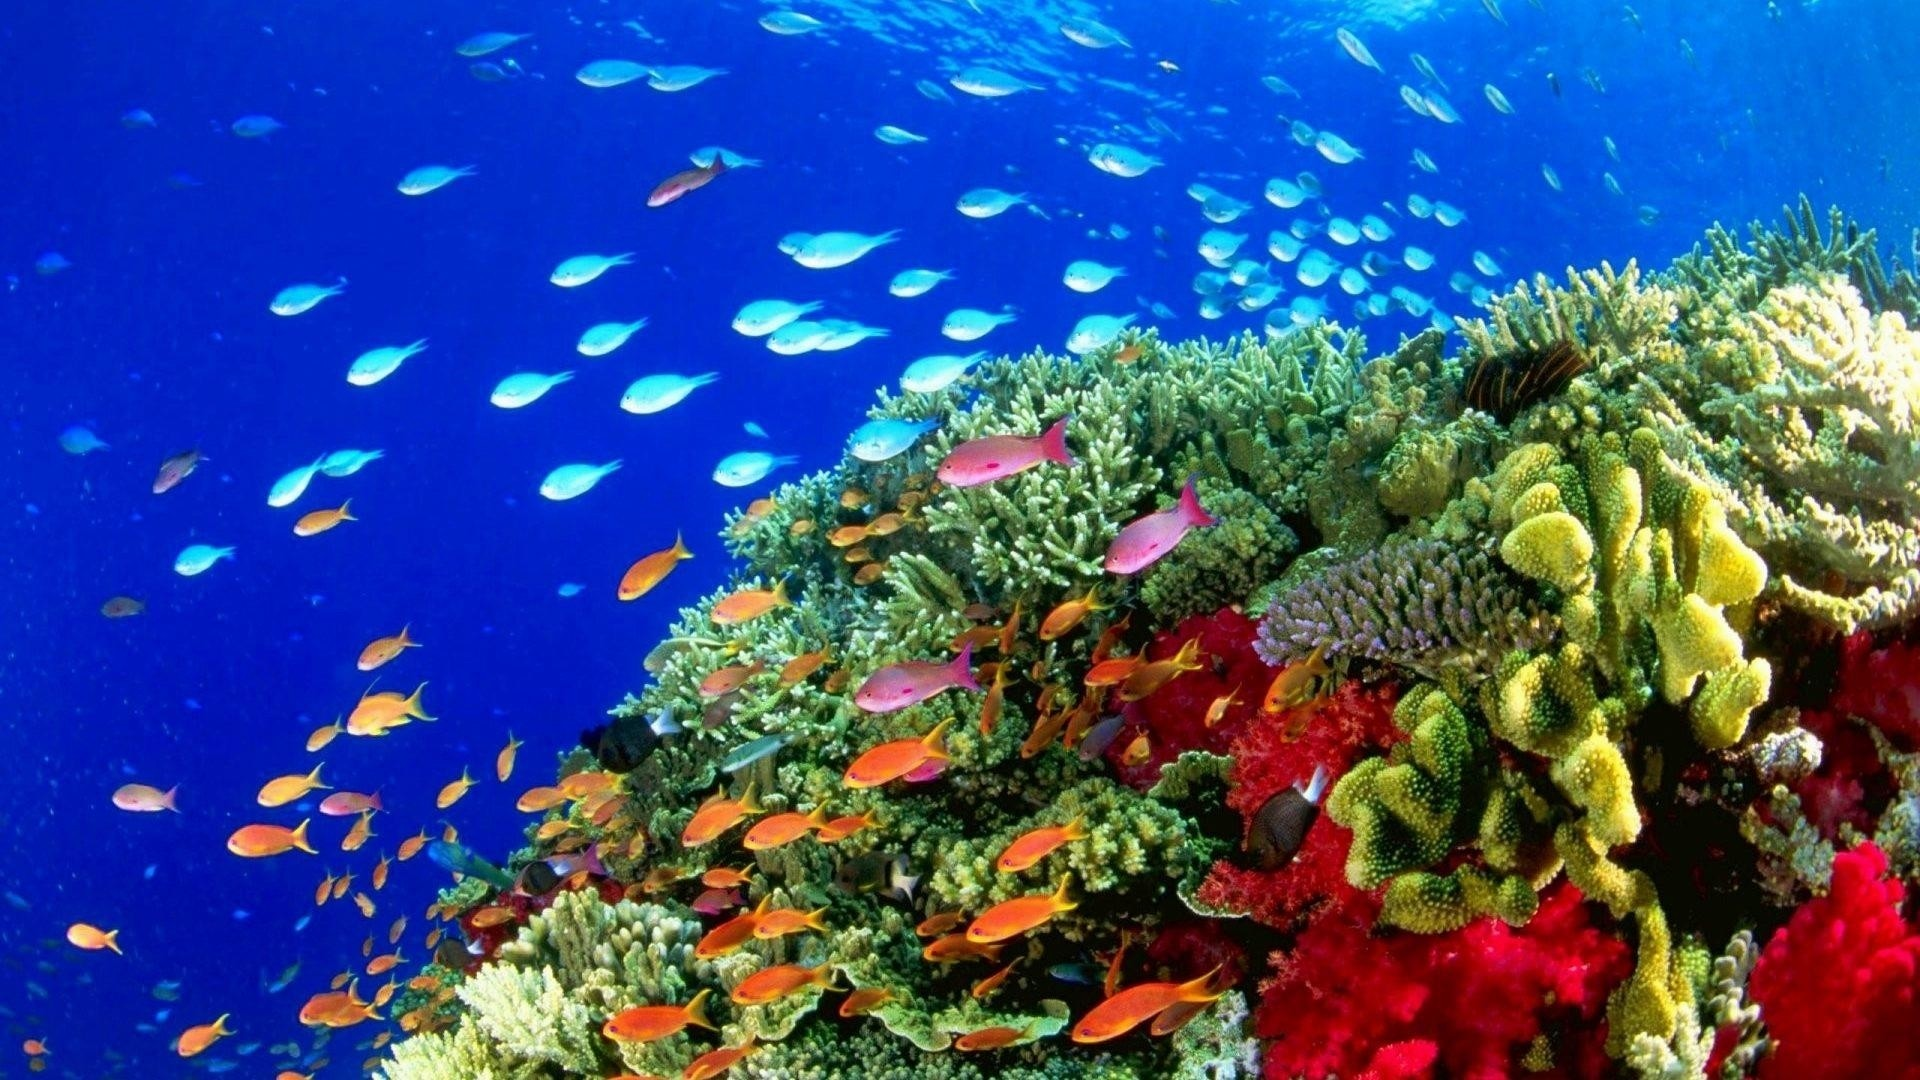 Coral Reef Wallpaper for pc